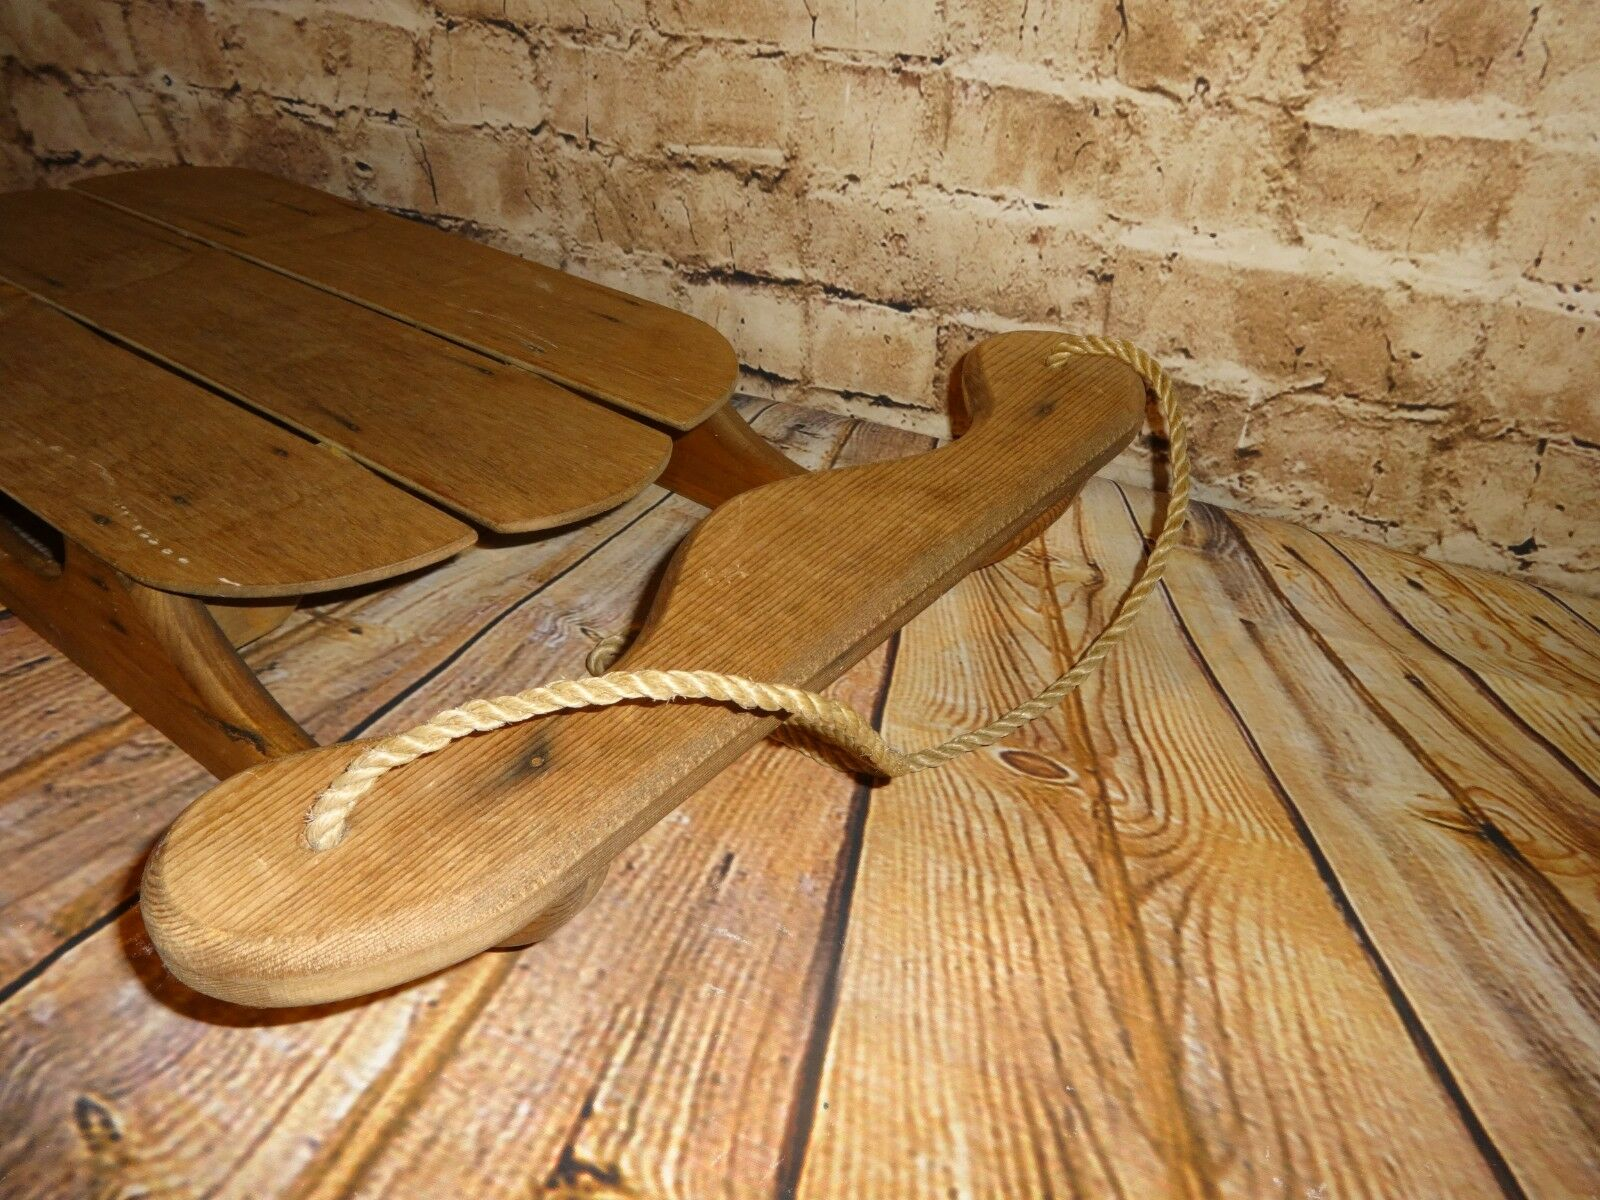 Rustic Wooden Snow Sled Cabin Decor Vintage Vintage Vintage Home Winter Holiday Country 30  ddb293